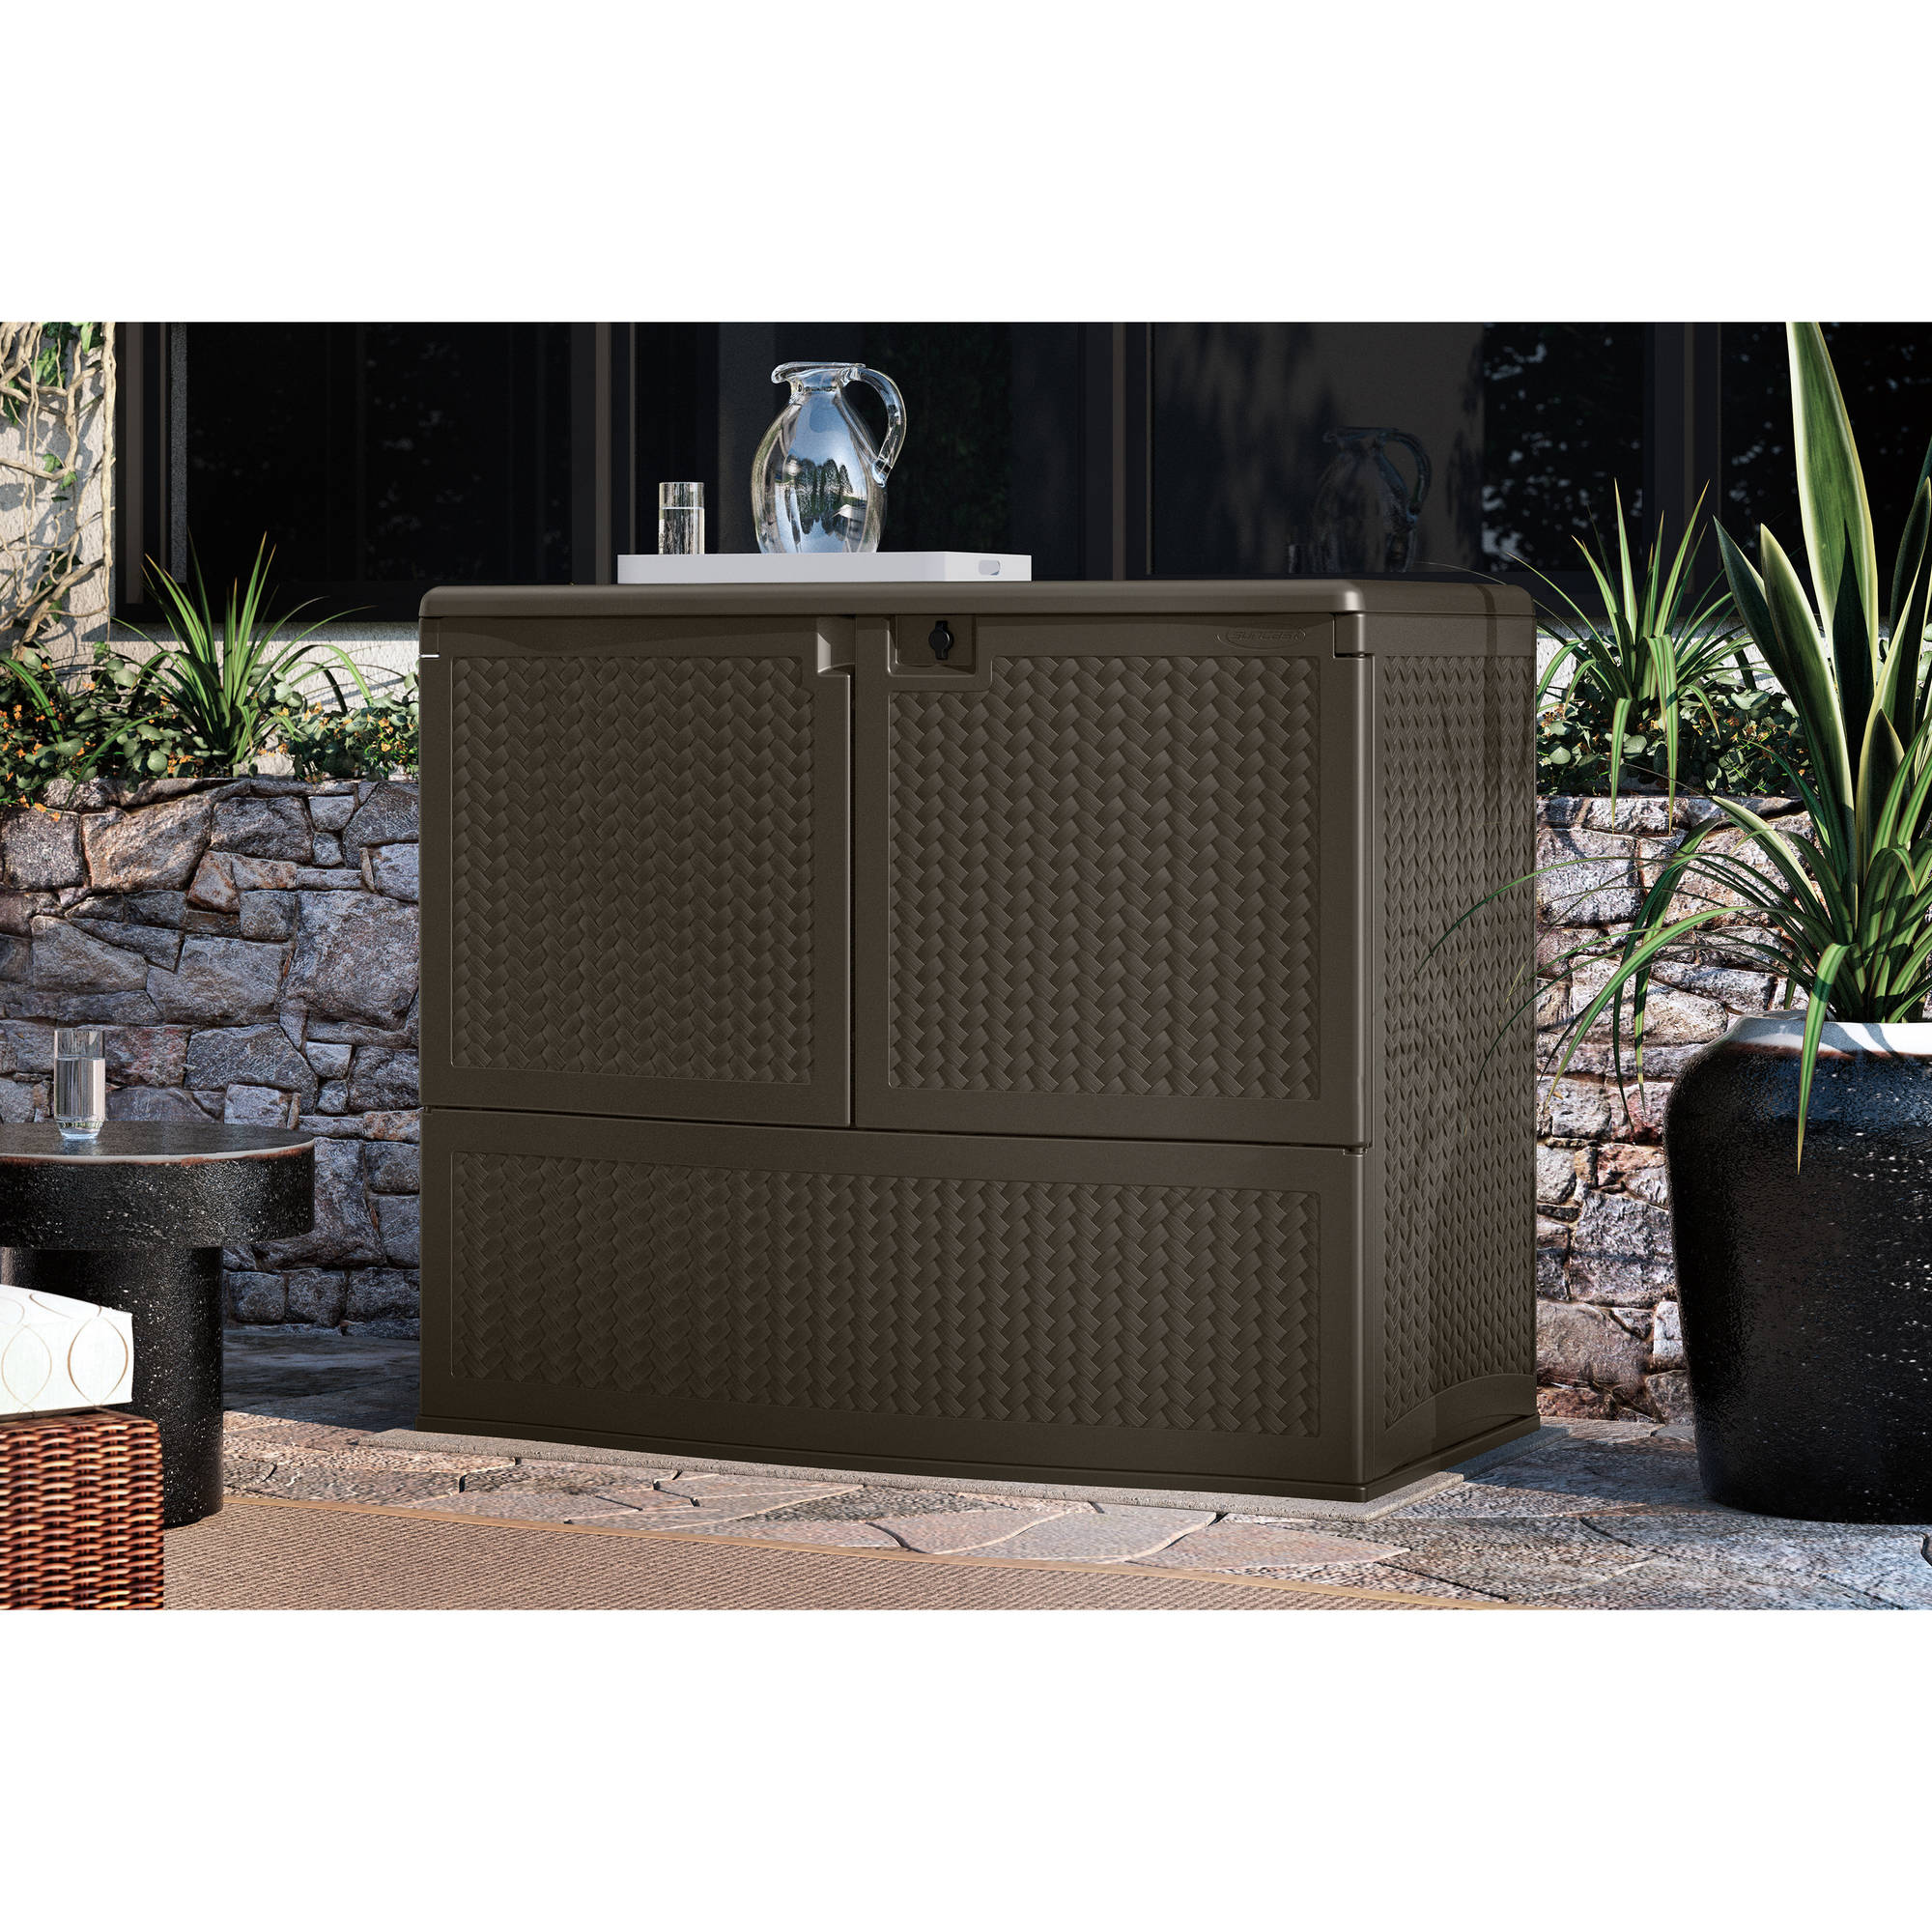 Suncast Herringbone Vertical Deck Box by Suncast